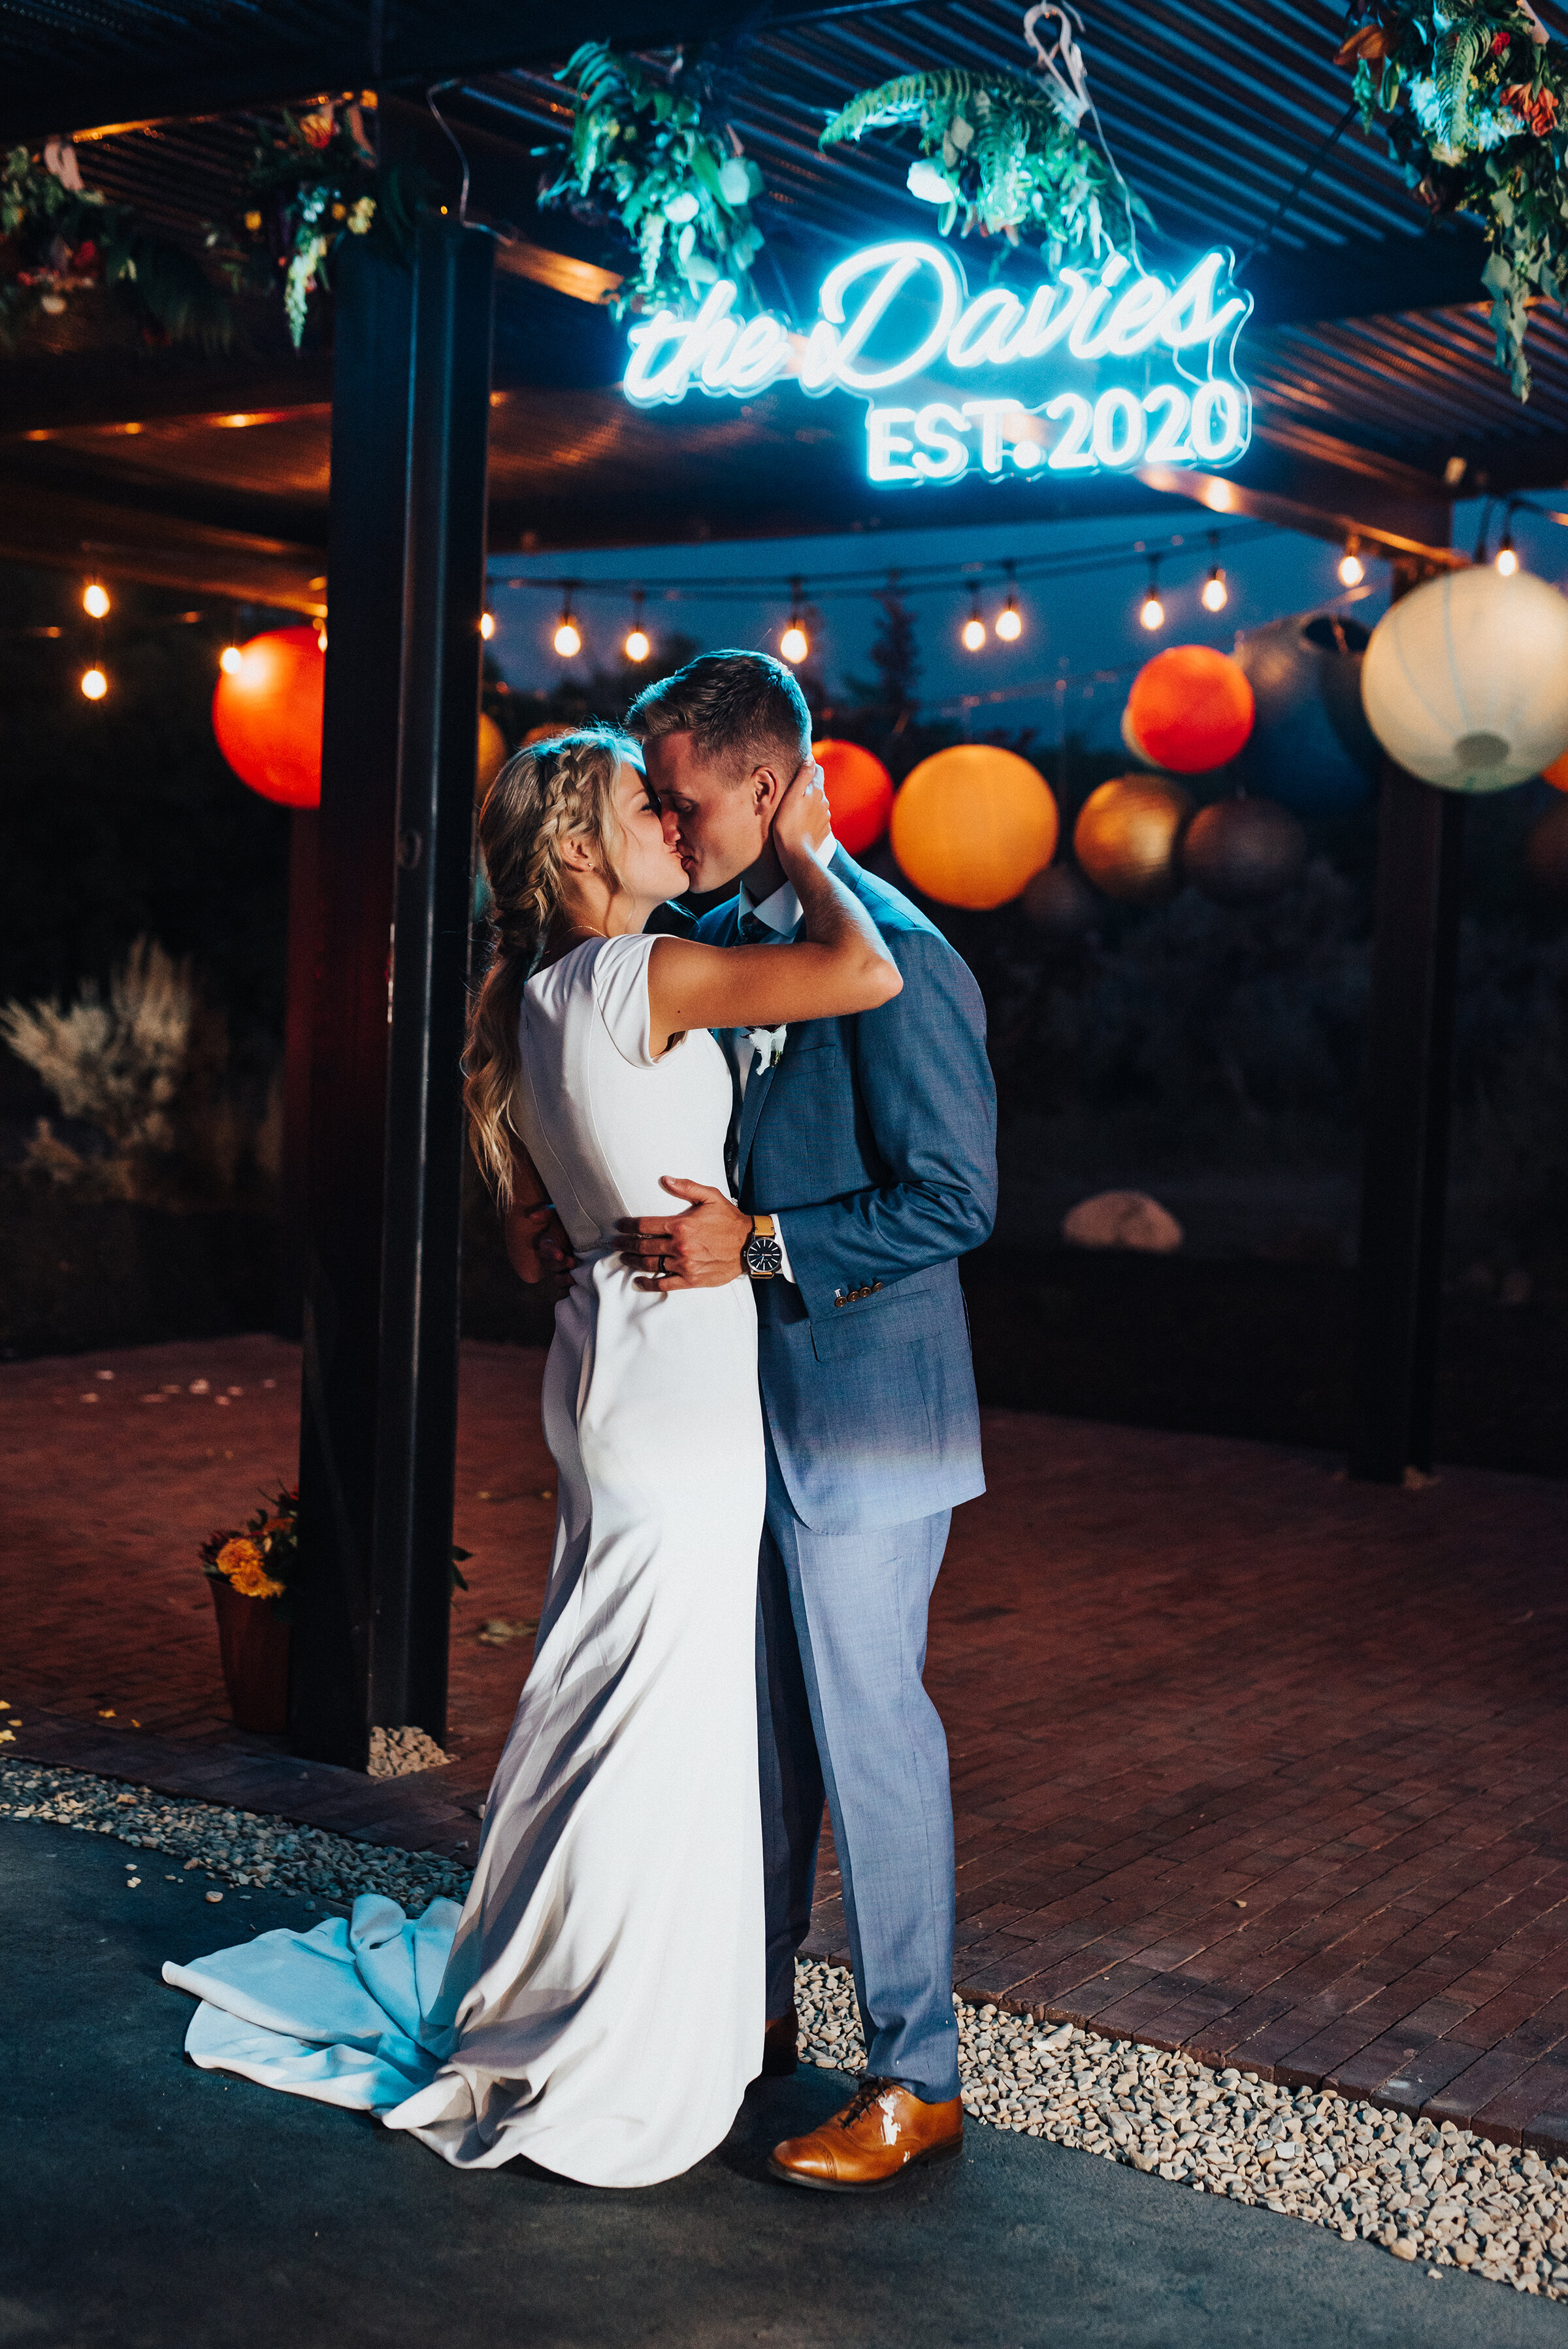 Retro neon sign hovering over this happy newlywed couple at their backyard wedding reception in Park City. Kristi Alyse Photography Logan Utah photographer Park City wedding photographer Drive-Thru wedding COVID wedding neon signs socially distant wedding bride and groom #kristialysephotography #weddingphotographer #utahweddings #parkcity #utahbrides #drivethruwedding #covidwedding #LoganUtahphotographer #utahweddingphotographer